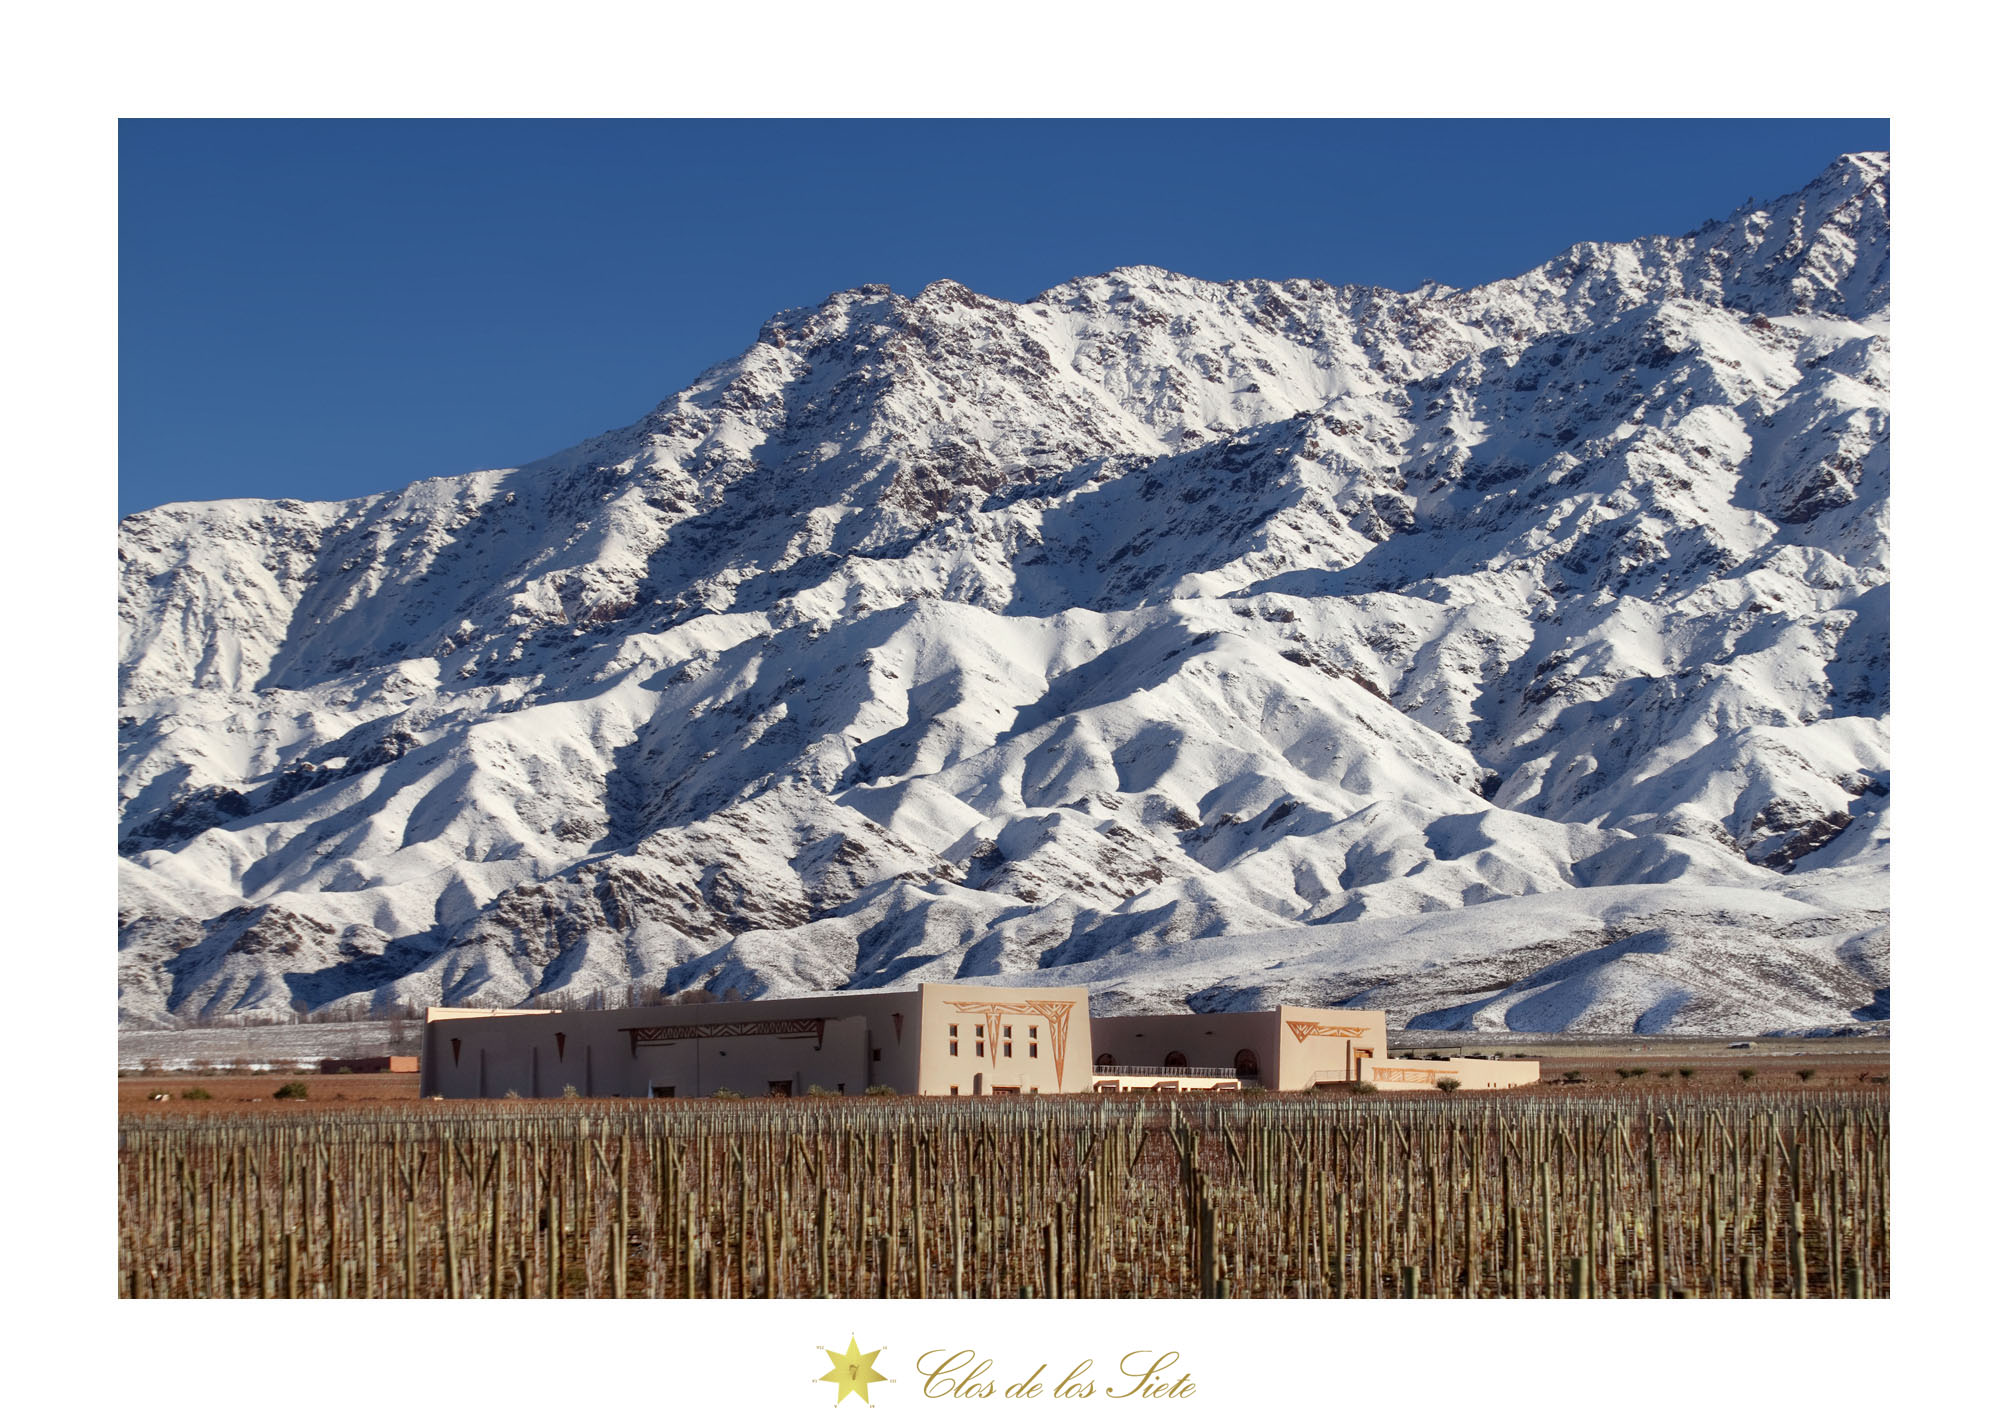 Snow capped mountains above Clos de los 7